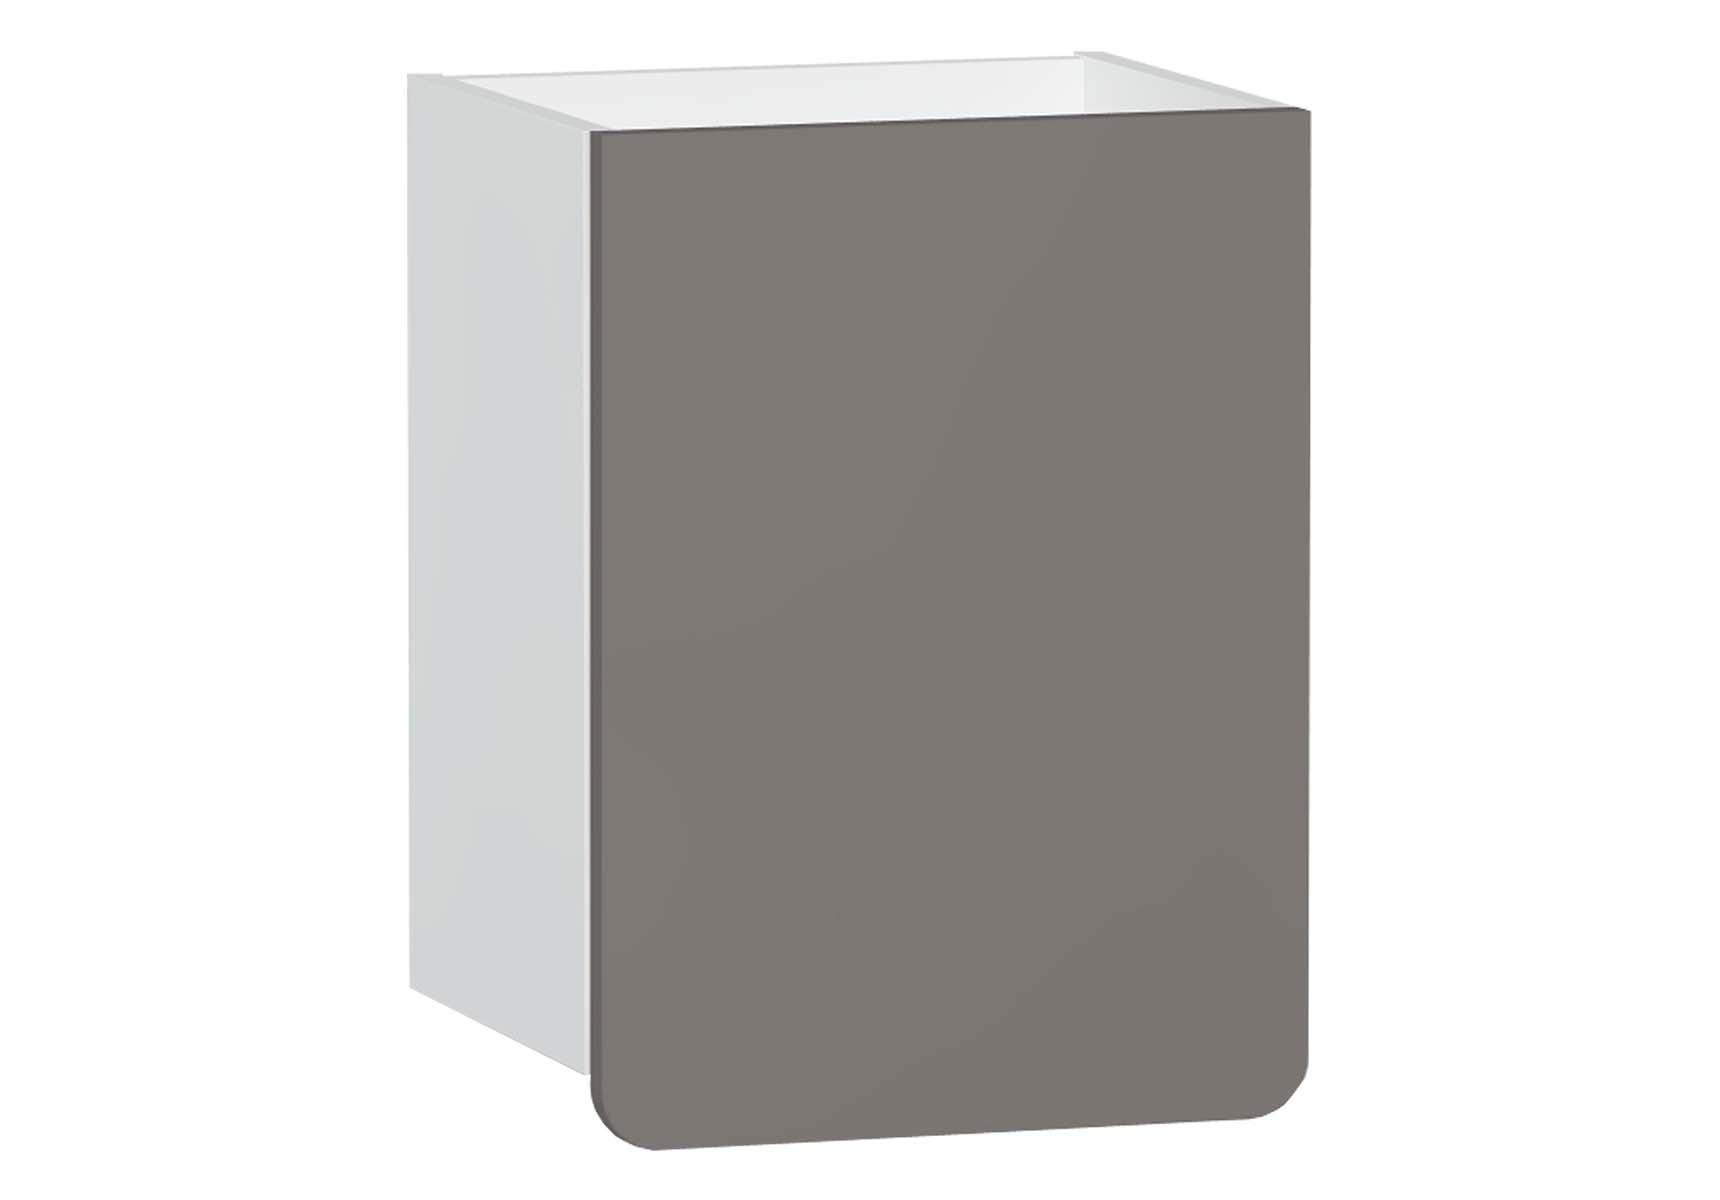 D-Light Side Unit, 40 cm, Matte White & Mink, Left